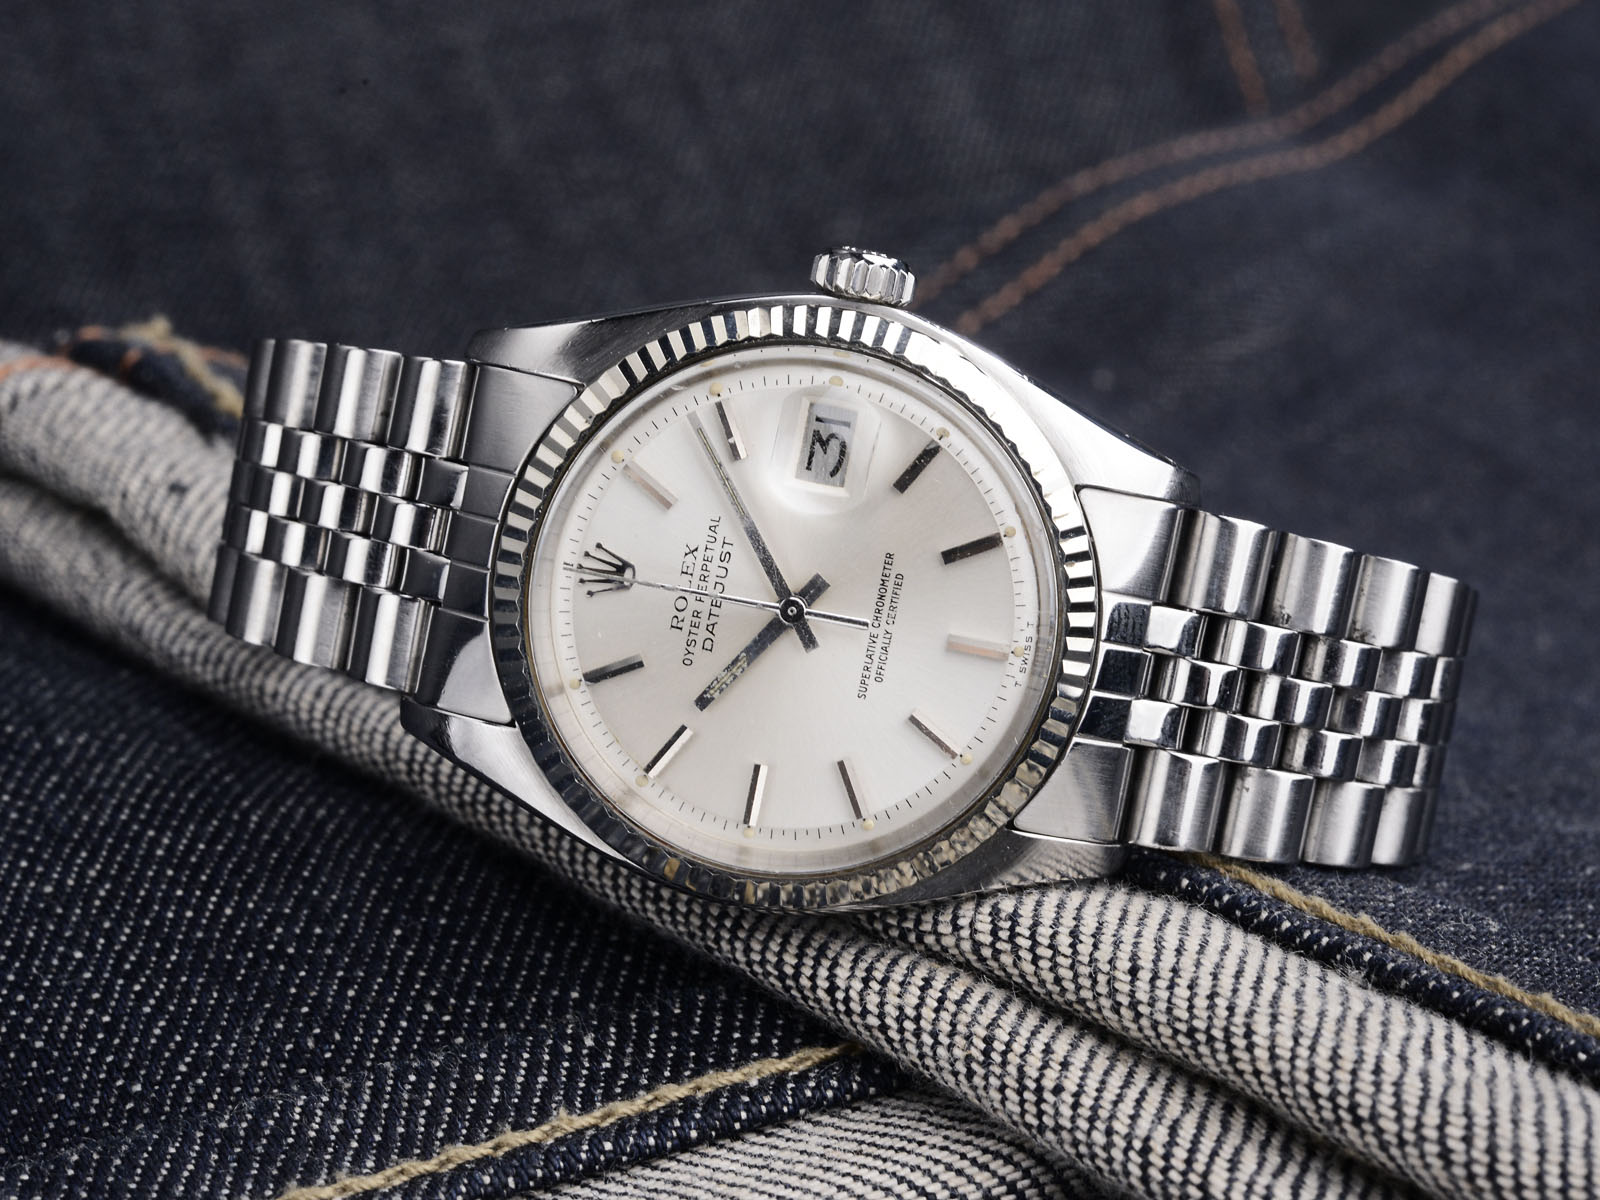 p pre watches goldsmiths rolex owned datejust